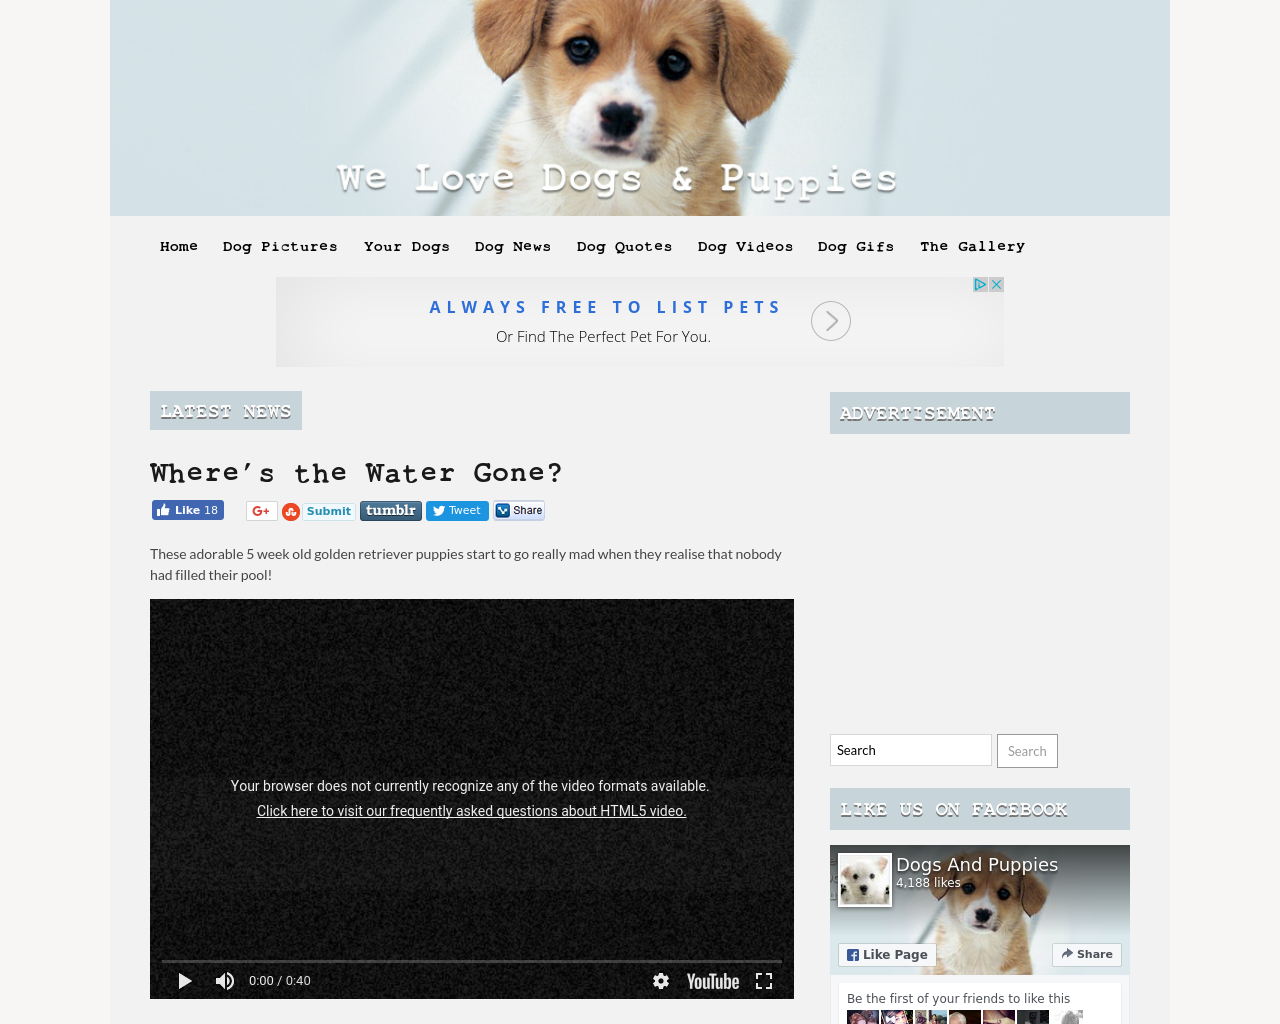 We-Love-Dogs-&-Puppies-Advertising-Reviews-Pricing